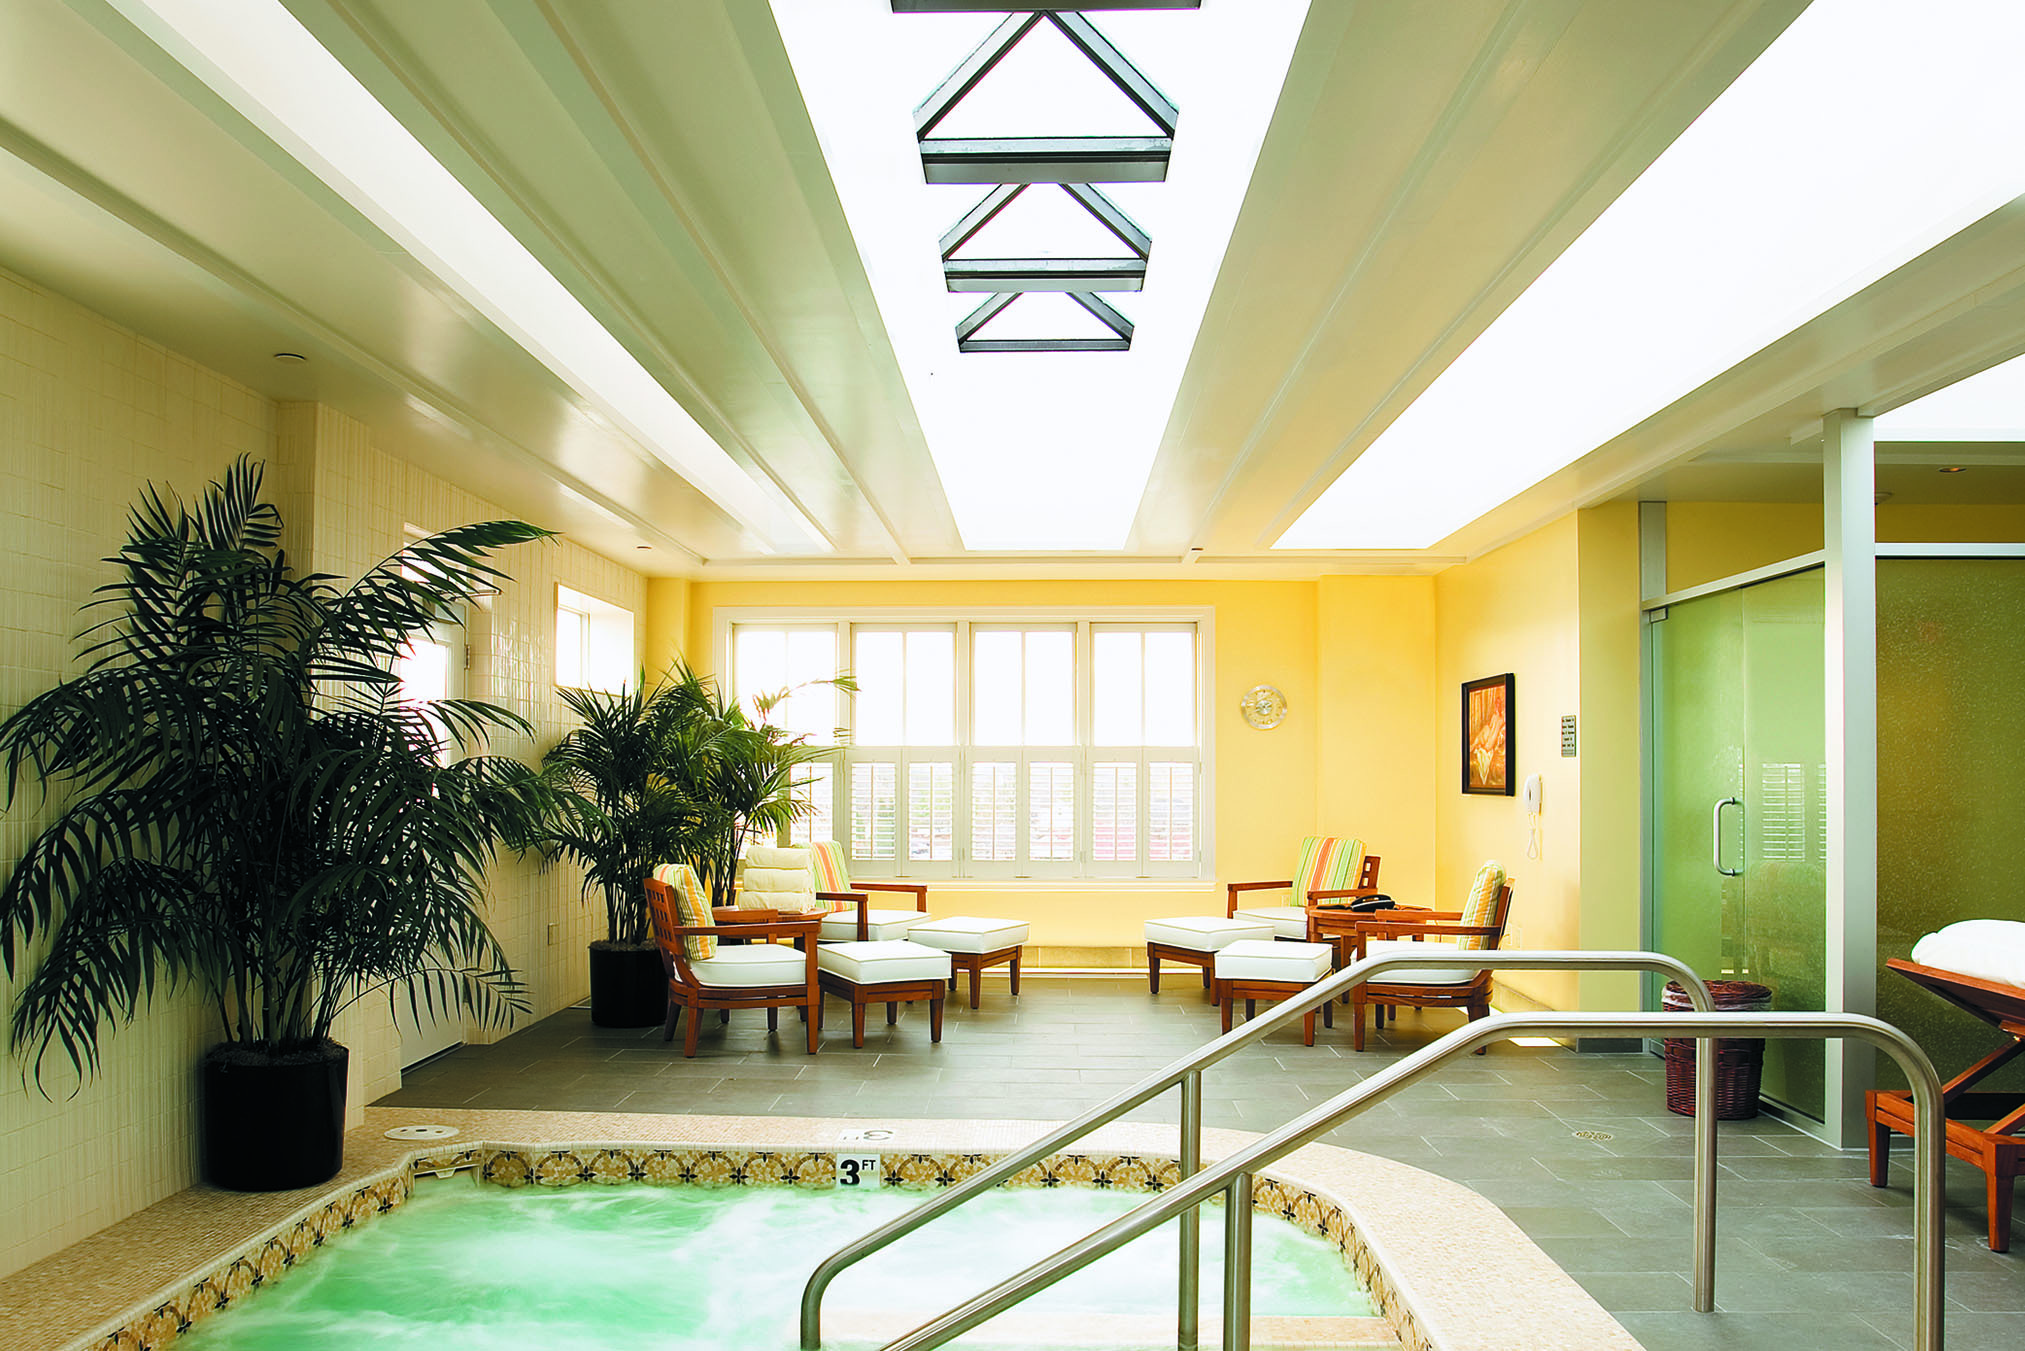 Kohler Waters Spa at Burr Ridge